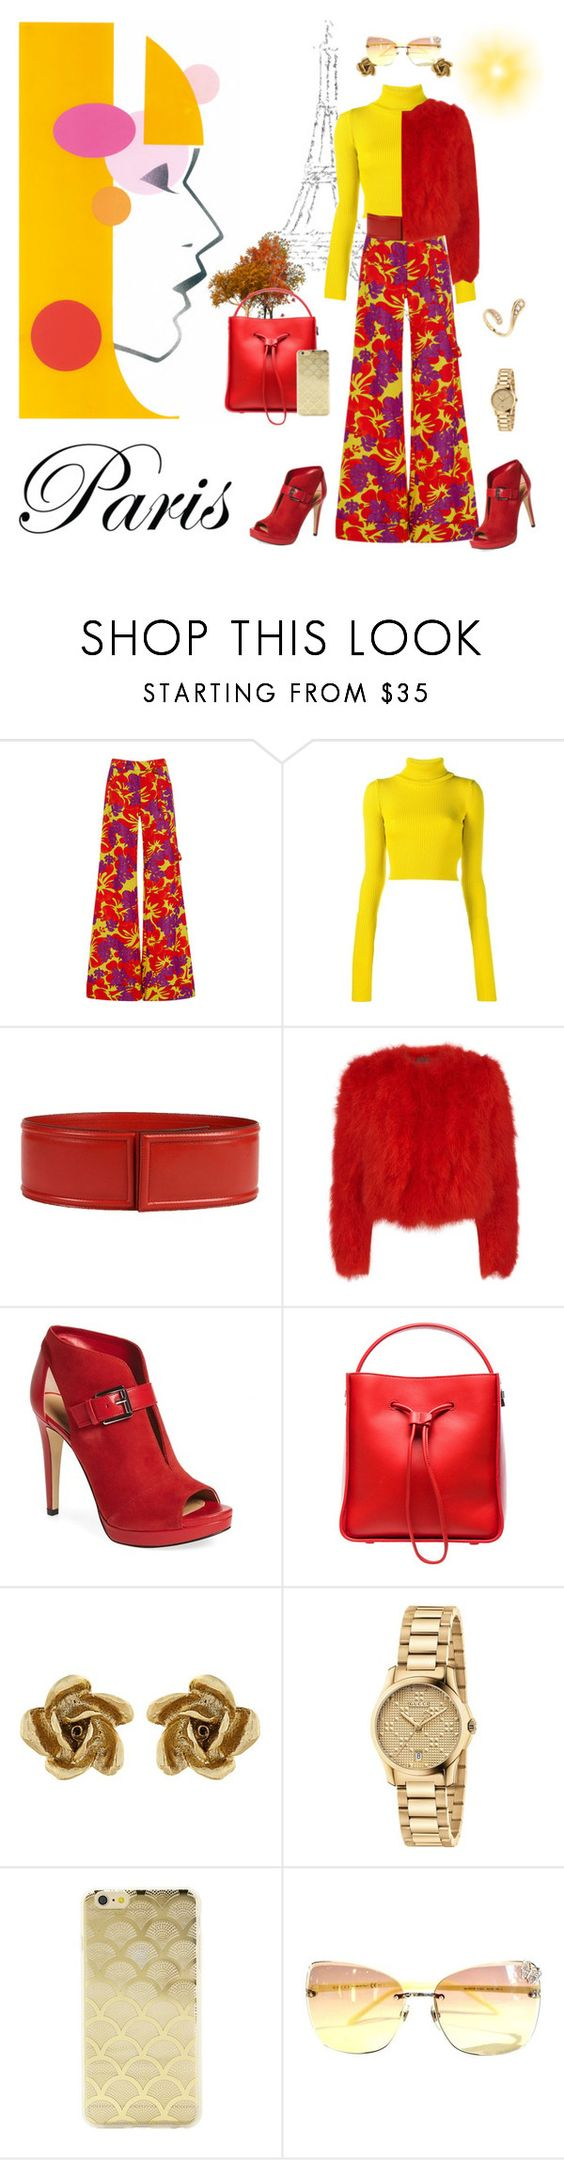 """""""Be as Colorful as the Season"""" by krusie ❤ liked on Polyvore featuring Rosie Assoulin, Jacquemus, Marni, Alexander McQueen, MICHAEL Michael Kors, 3.1 Phillip Lim, Oscar de la Renta, Gucci, Sonix and Fernando Jorge"""